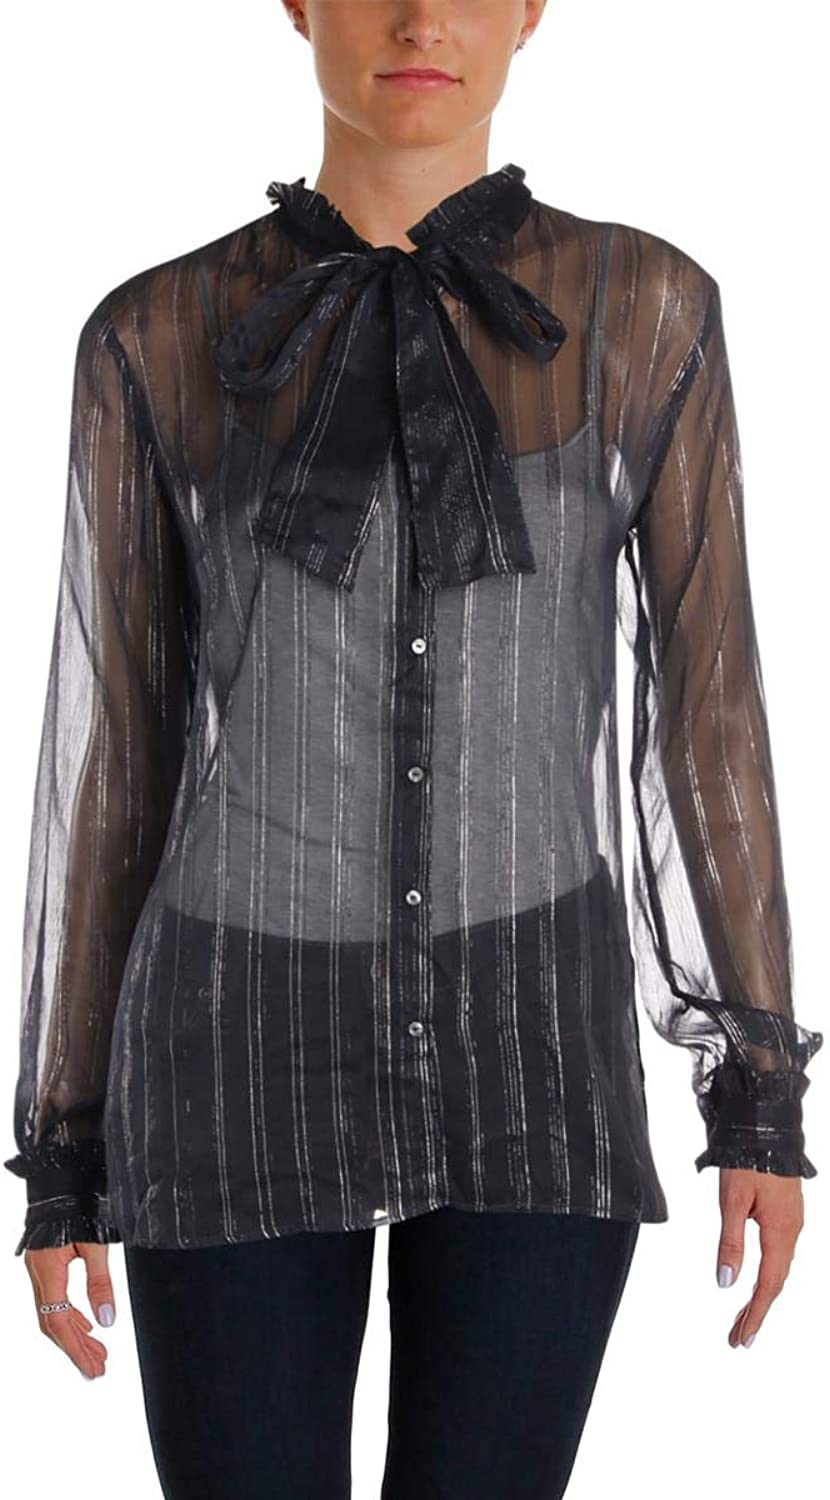 Scotch & Soda Womens Metallic Stripes Sheer Blouse